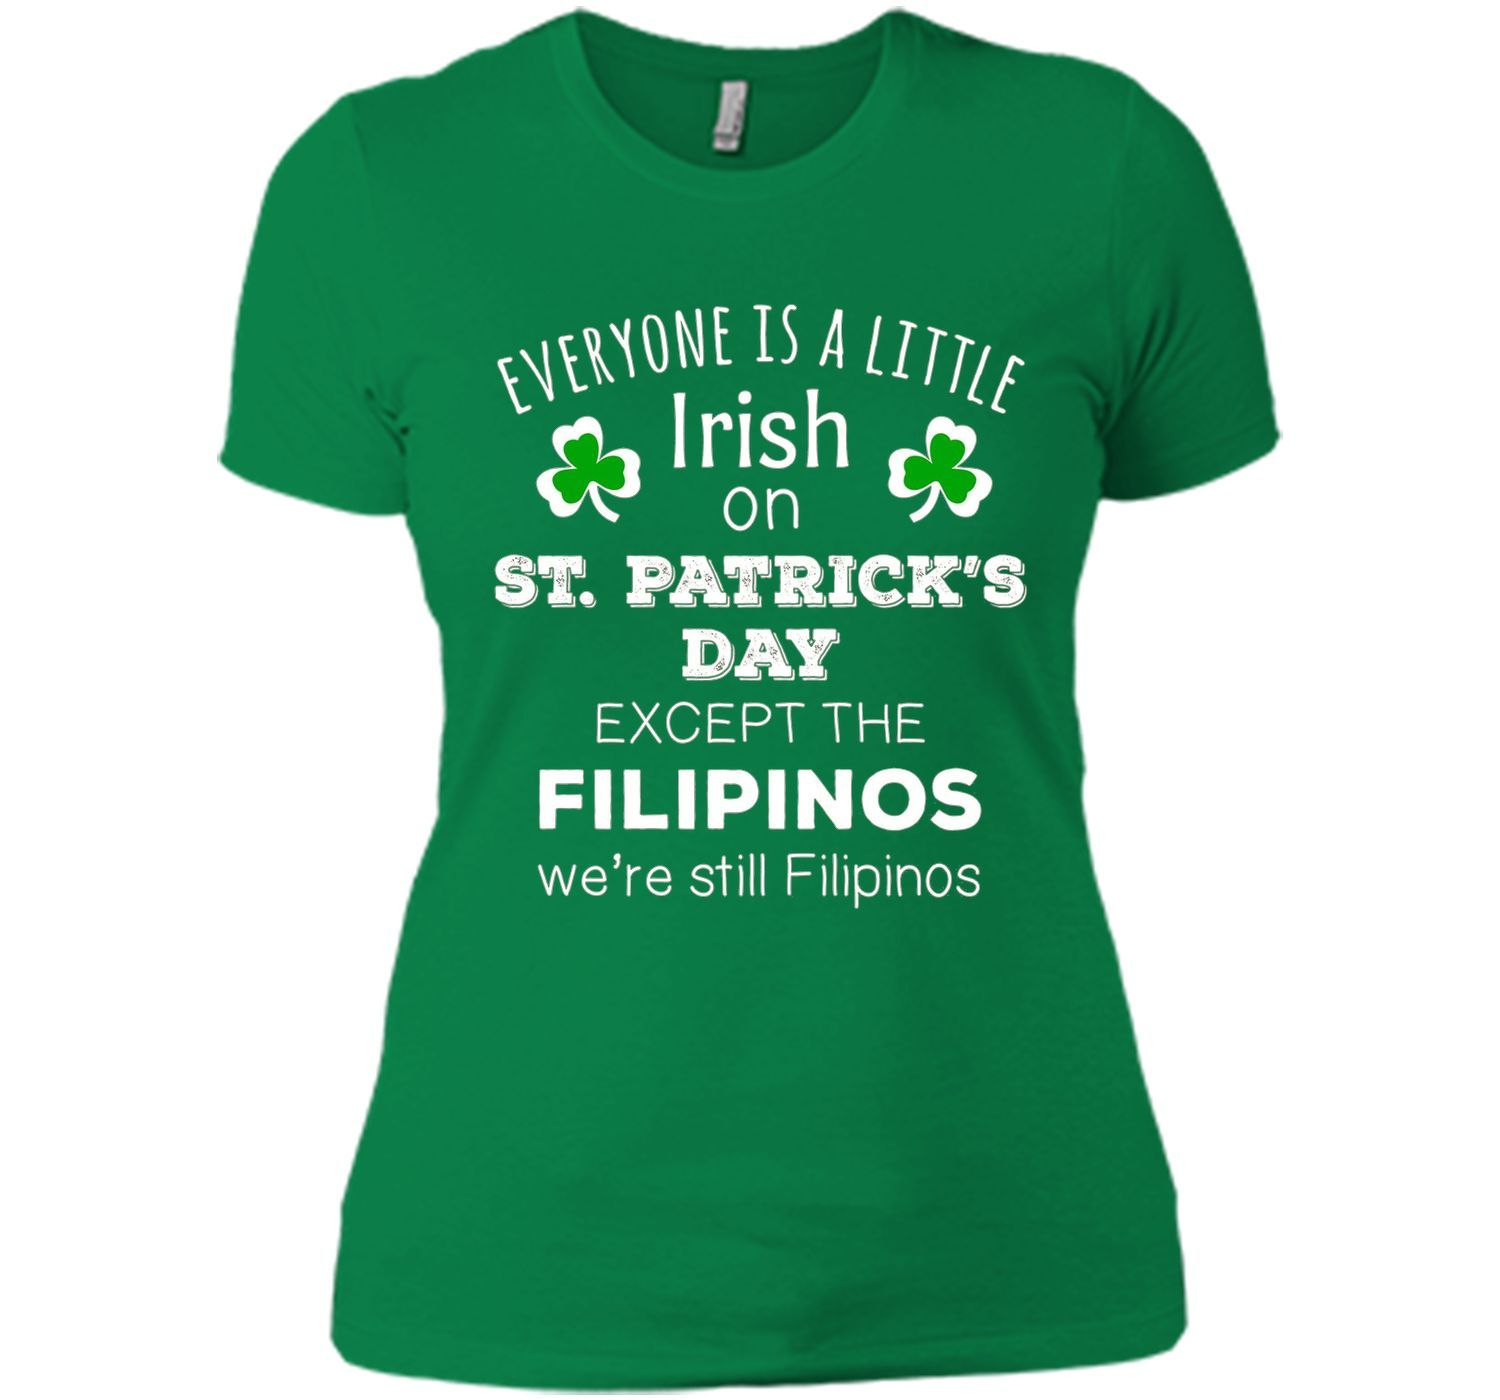 f0b242d9 Filipinos Irish On St. Patrick's Day Philippines T-shirt t-shirt ...